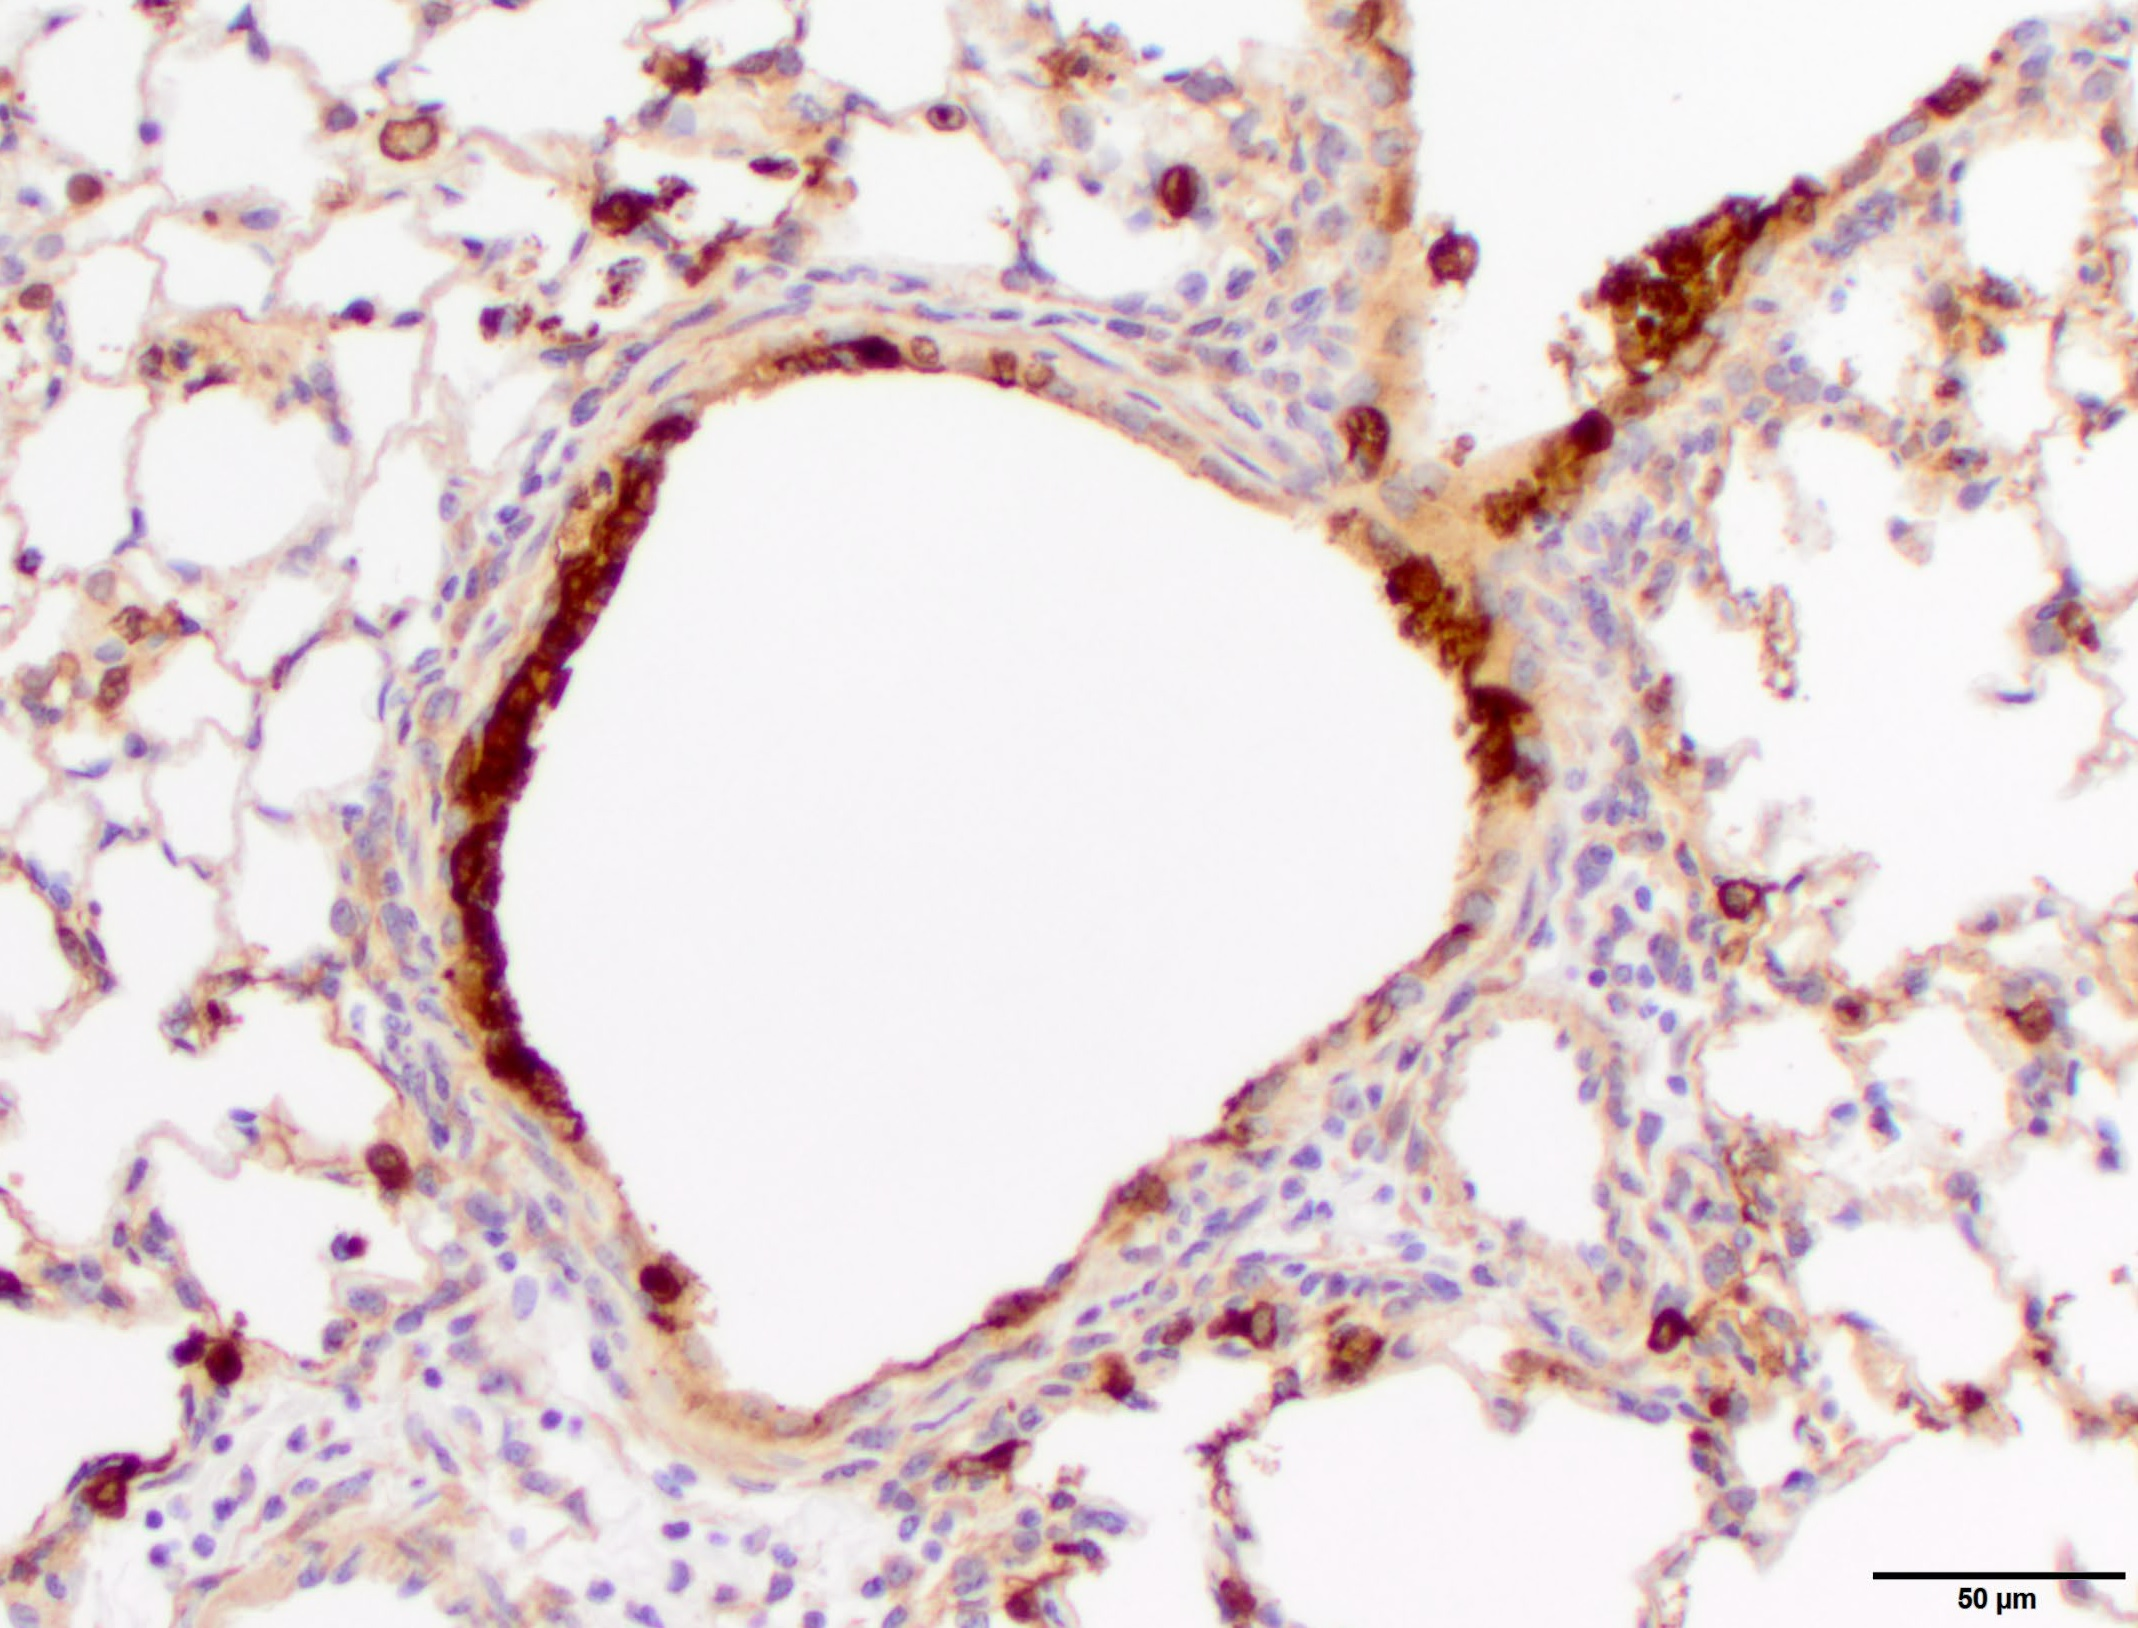 Flu in mouse lung